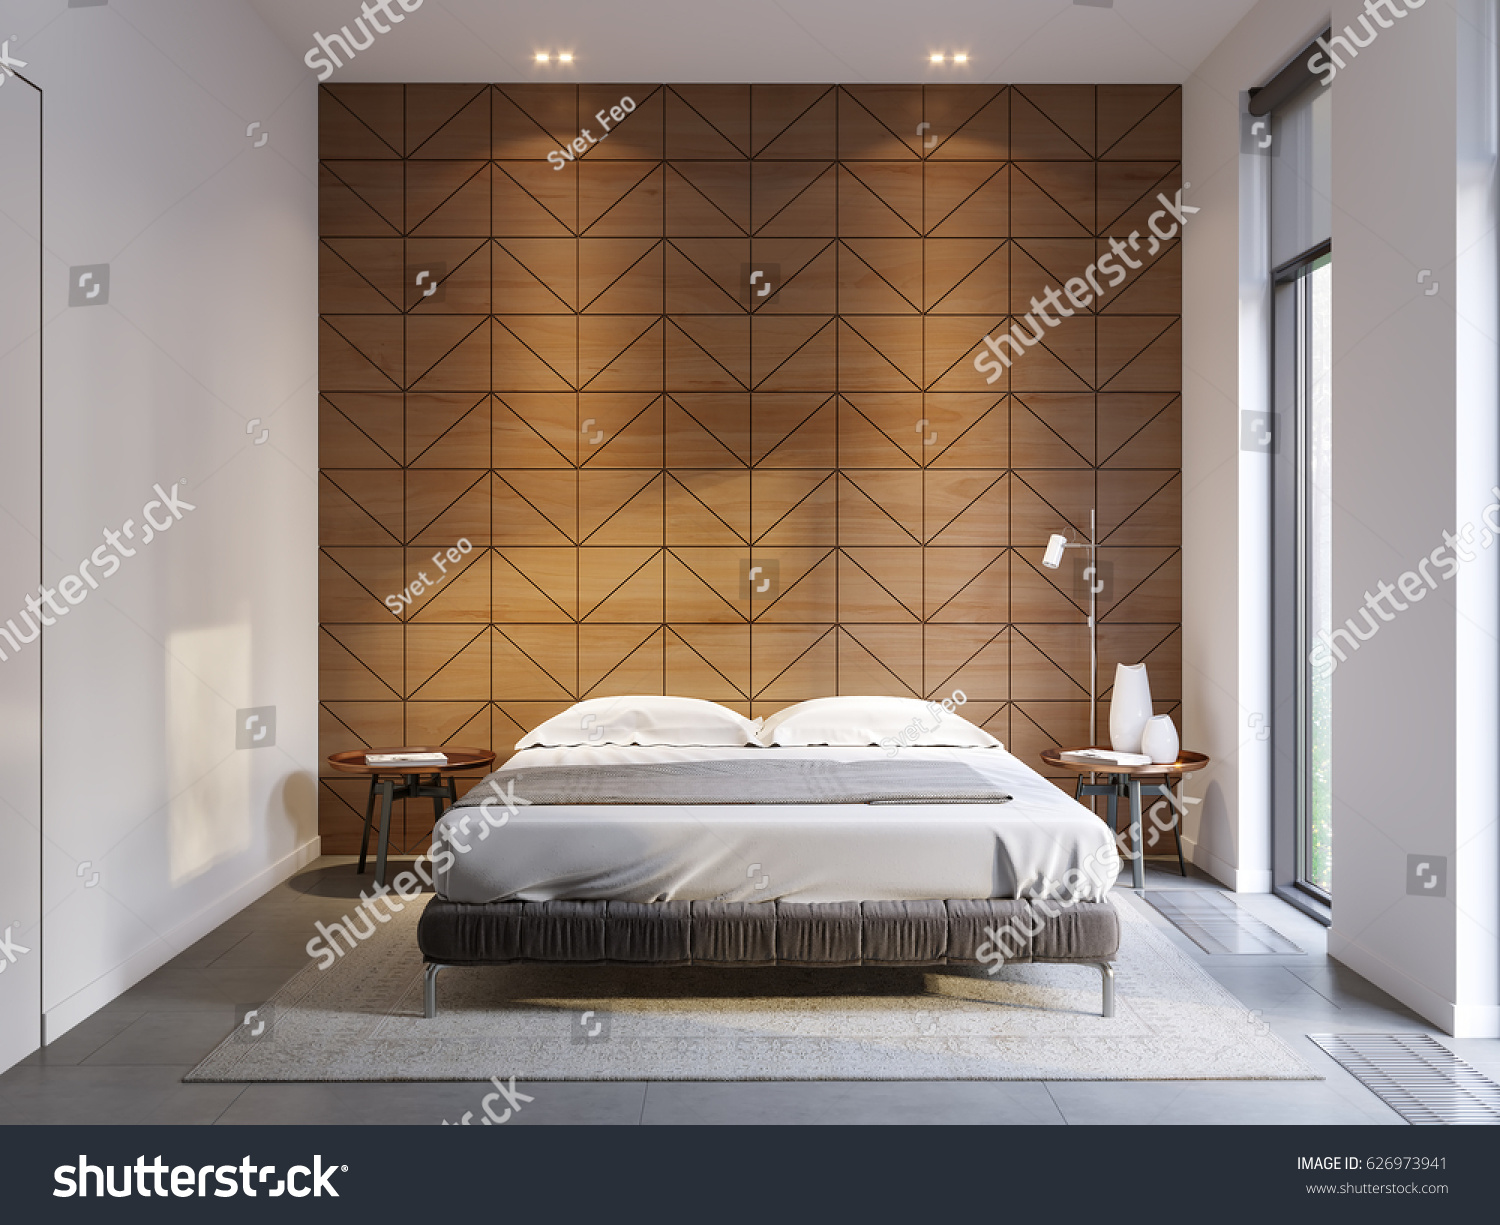 High Tech Bedroom Urban Contemporary Modern Minimalism Hightech Bedroom Stock